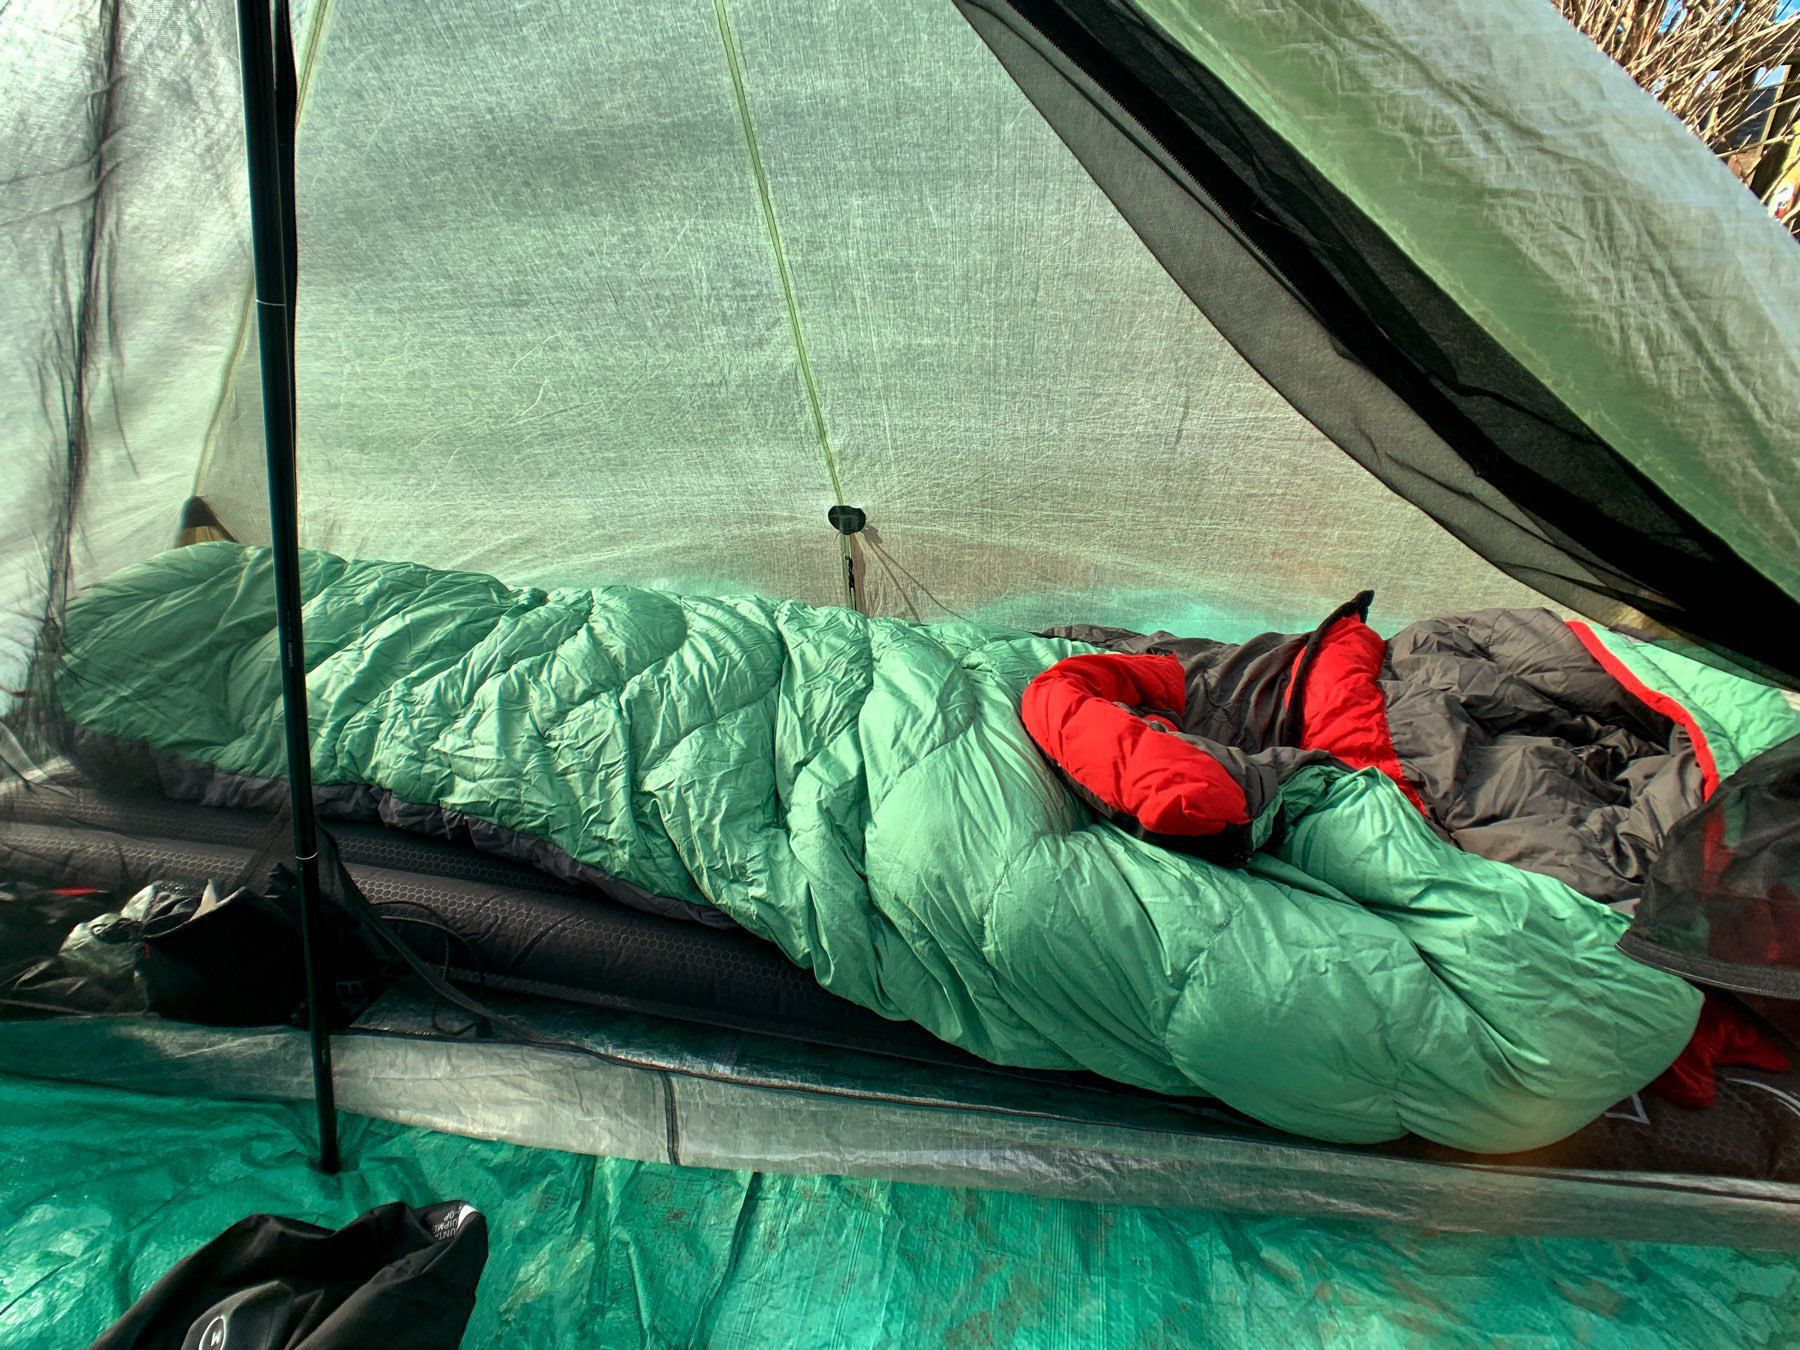 the inside of a tent with a winter sleeping bag unfurled